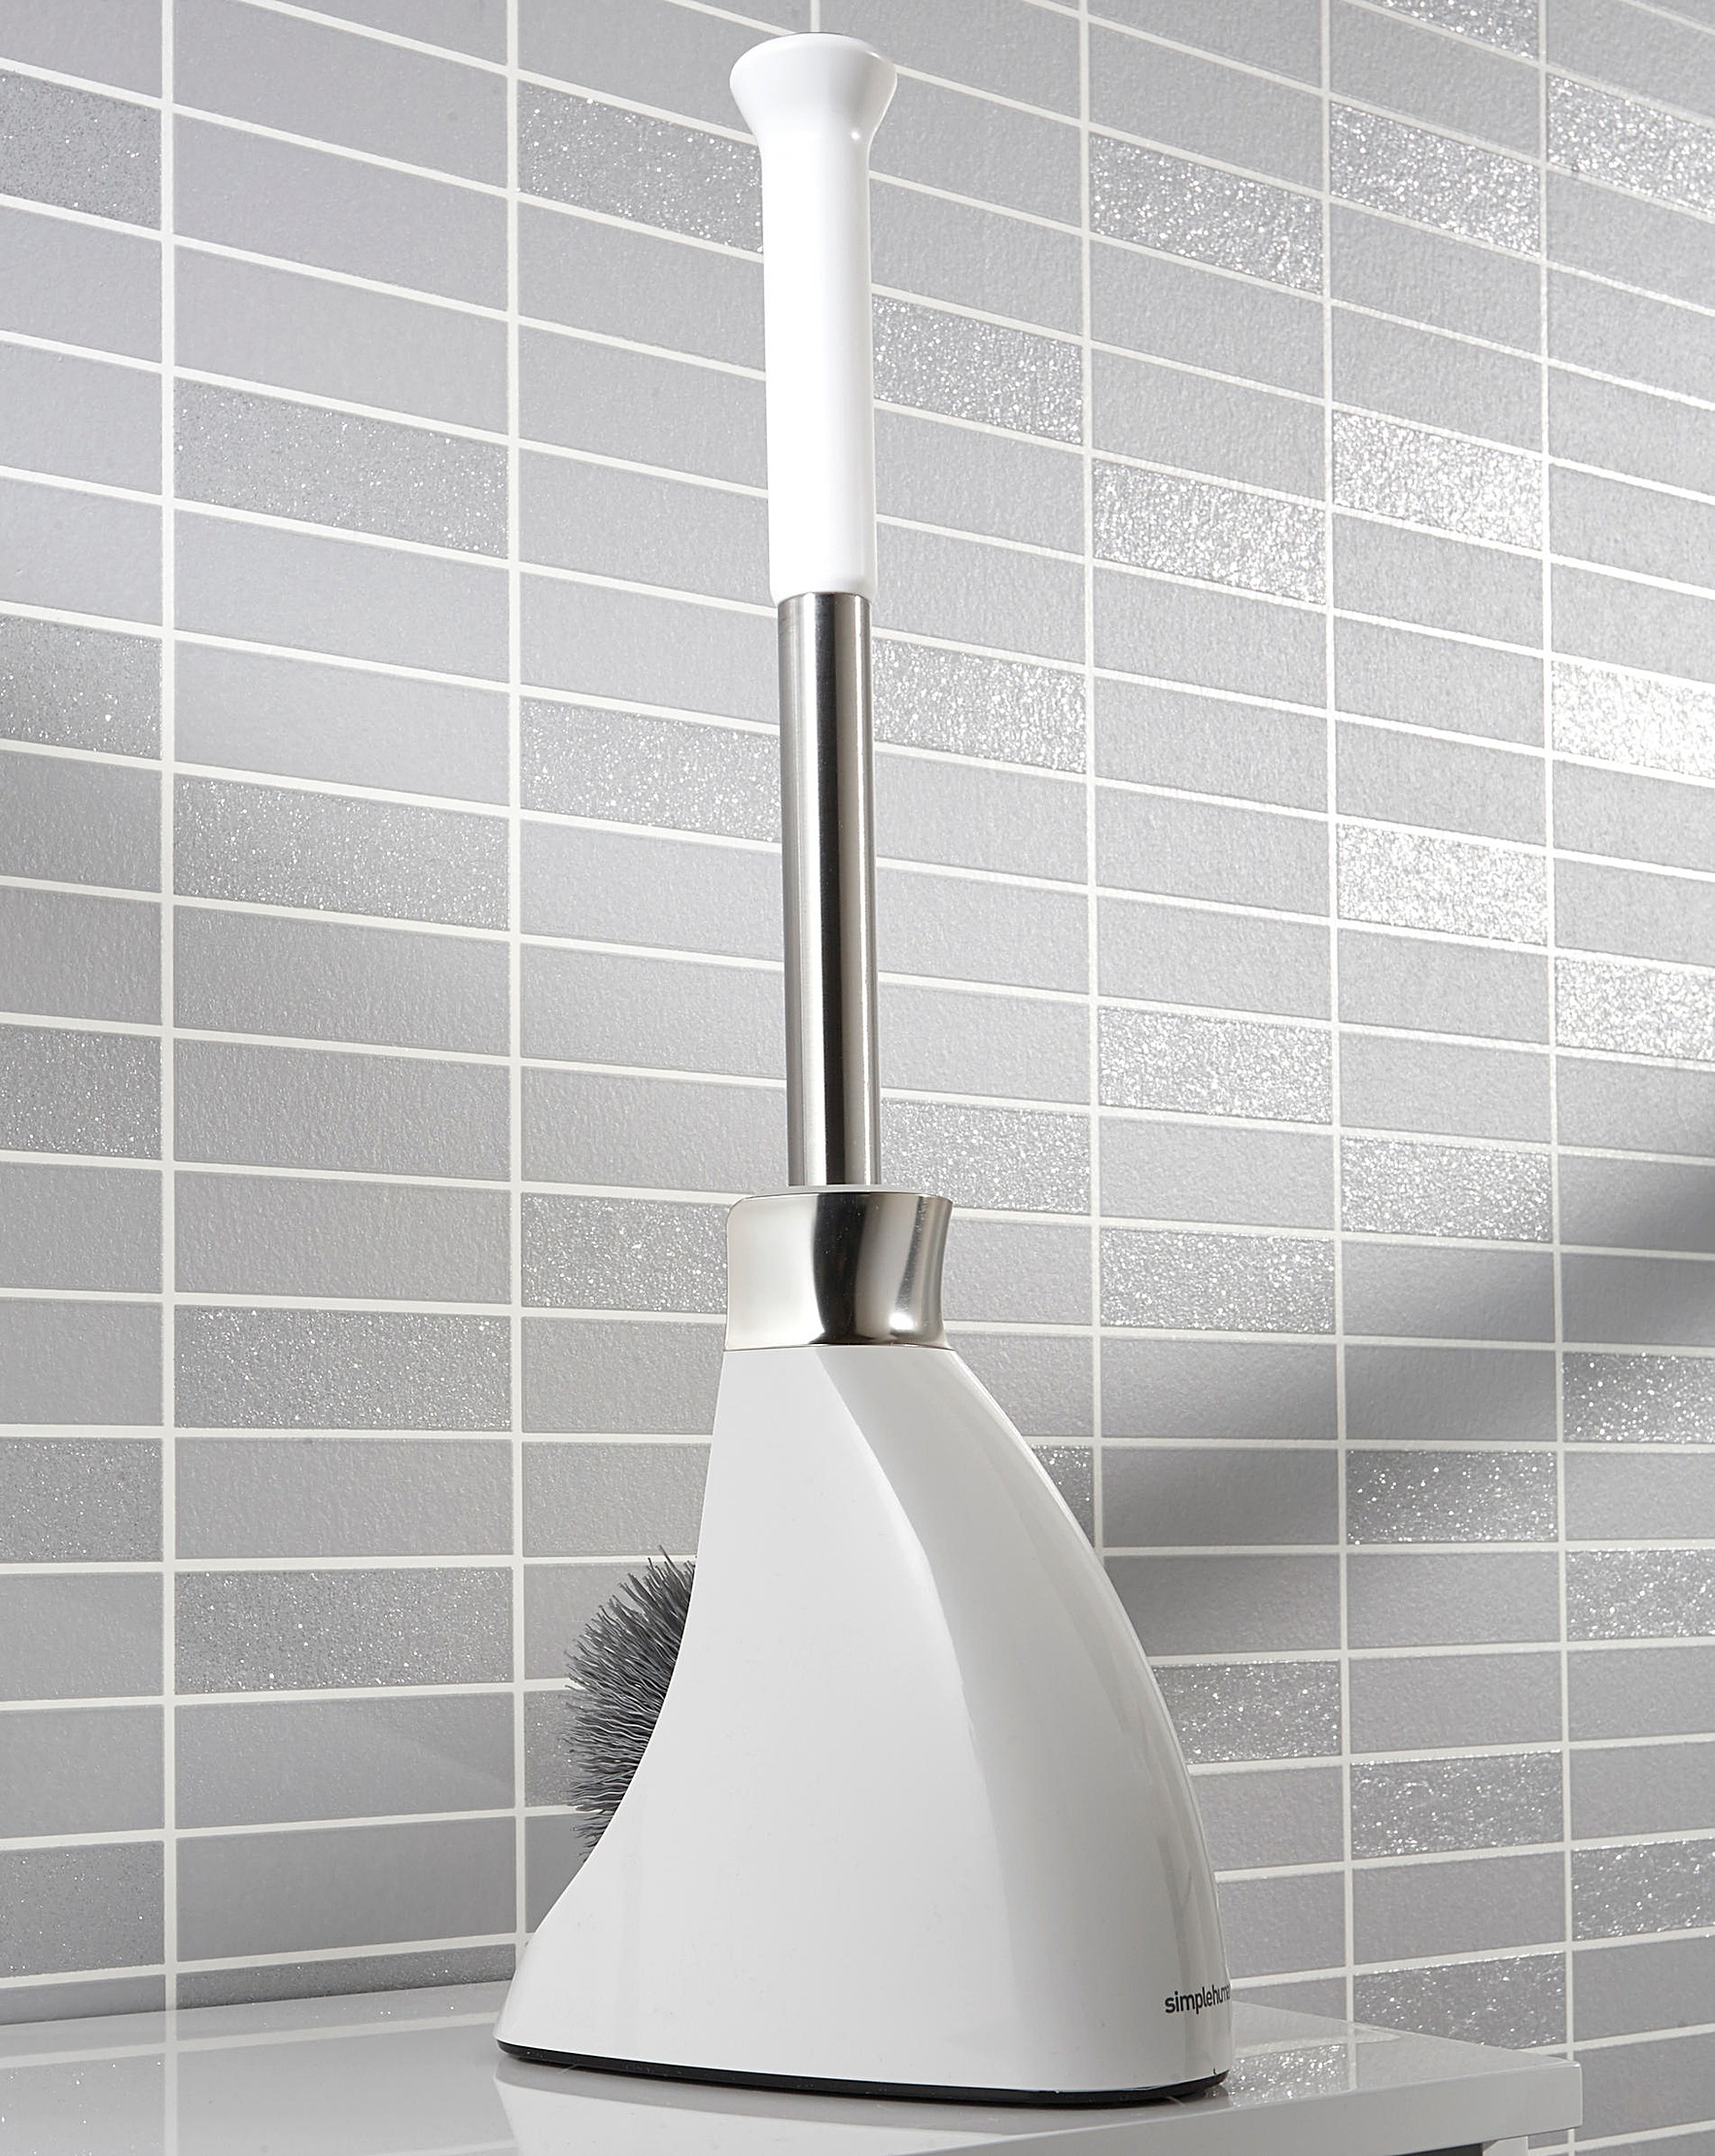 Simplehuman Toilet Brush | J D Williams